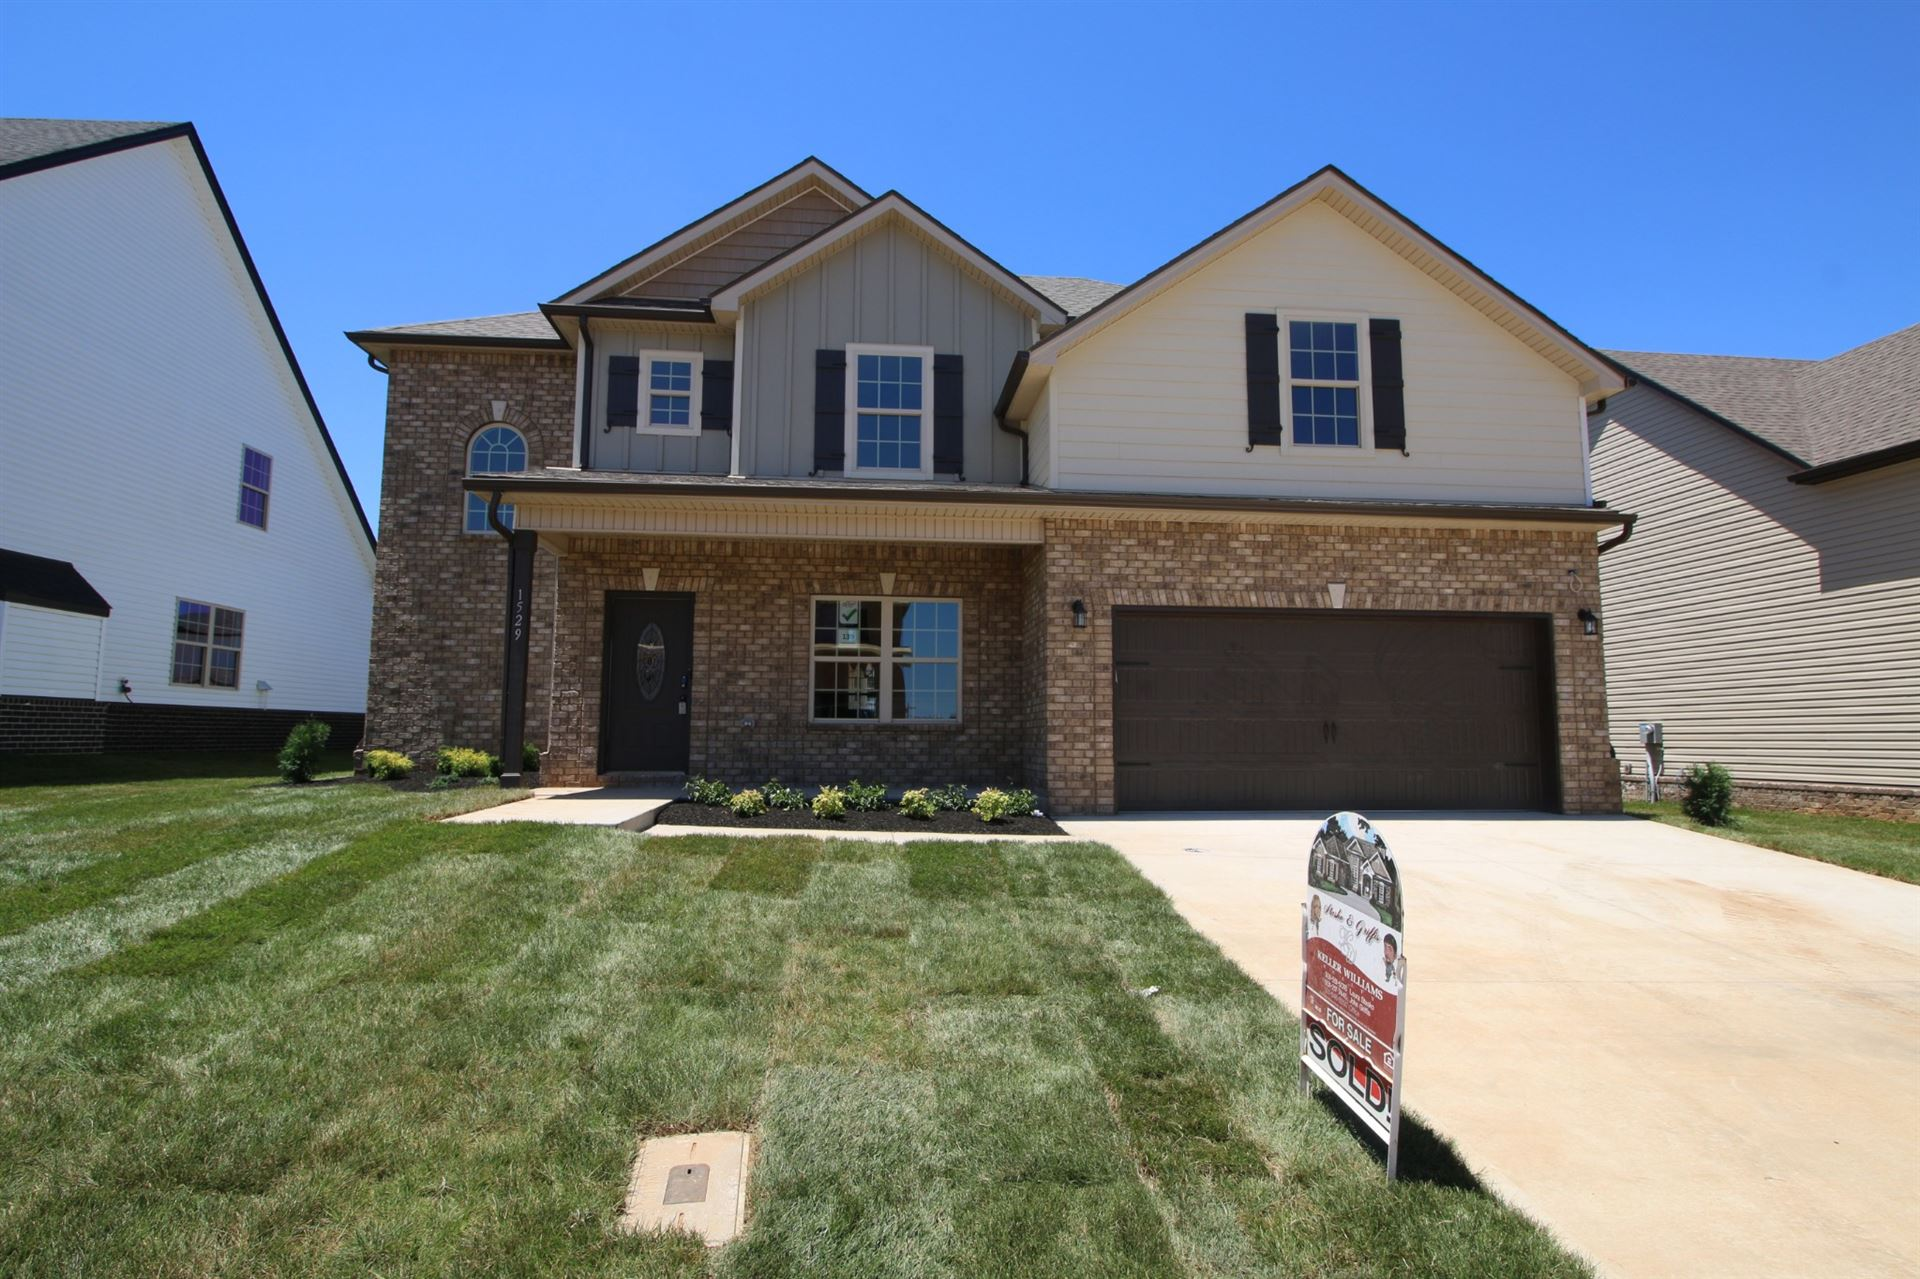 139 Charleston Oaks, Clarksville, TN 37042 - MLS#: 2231330